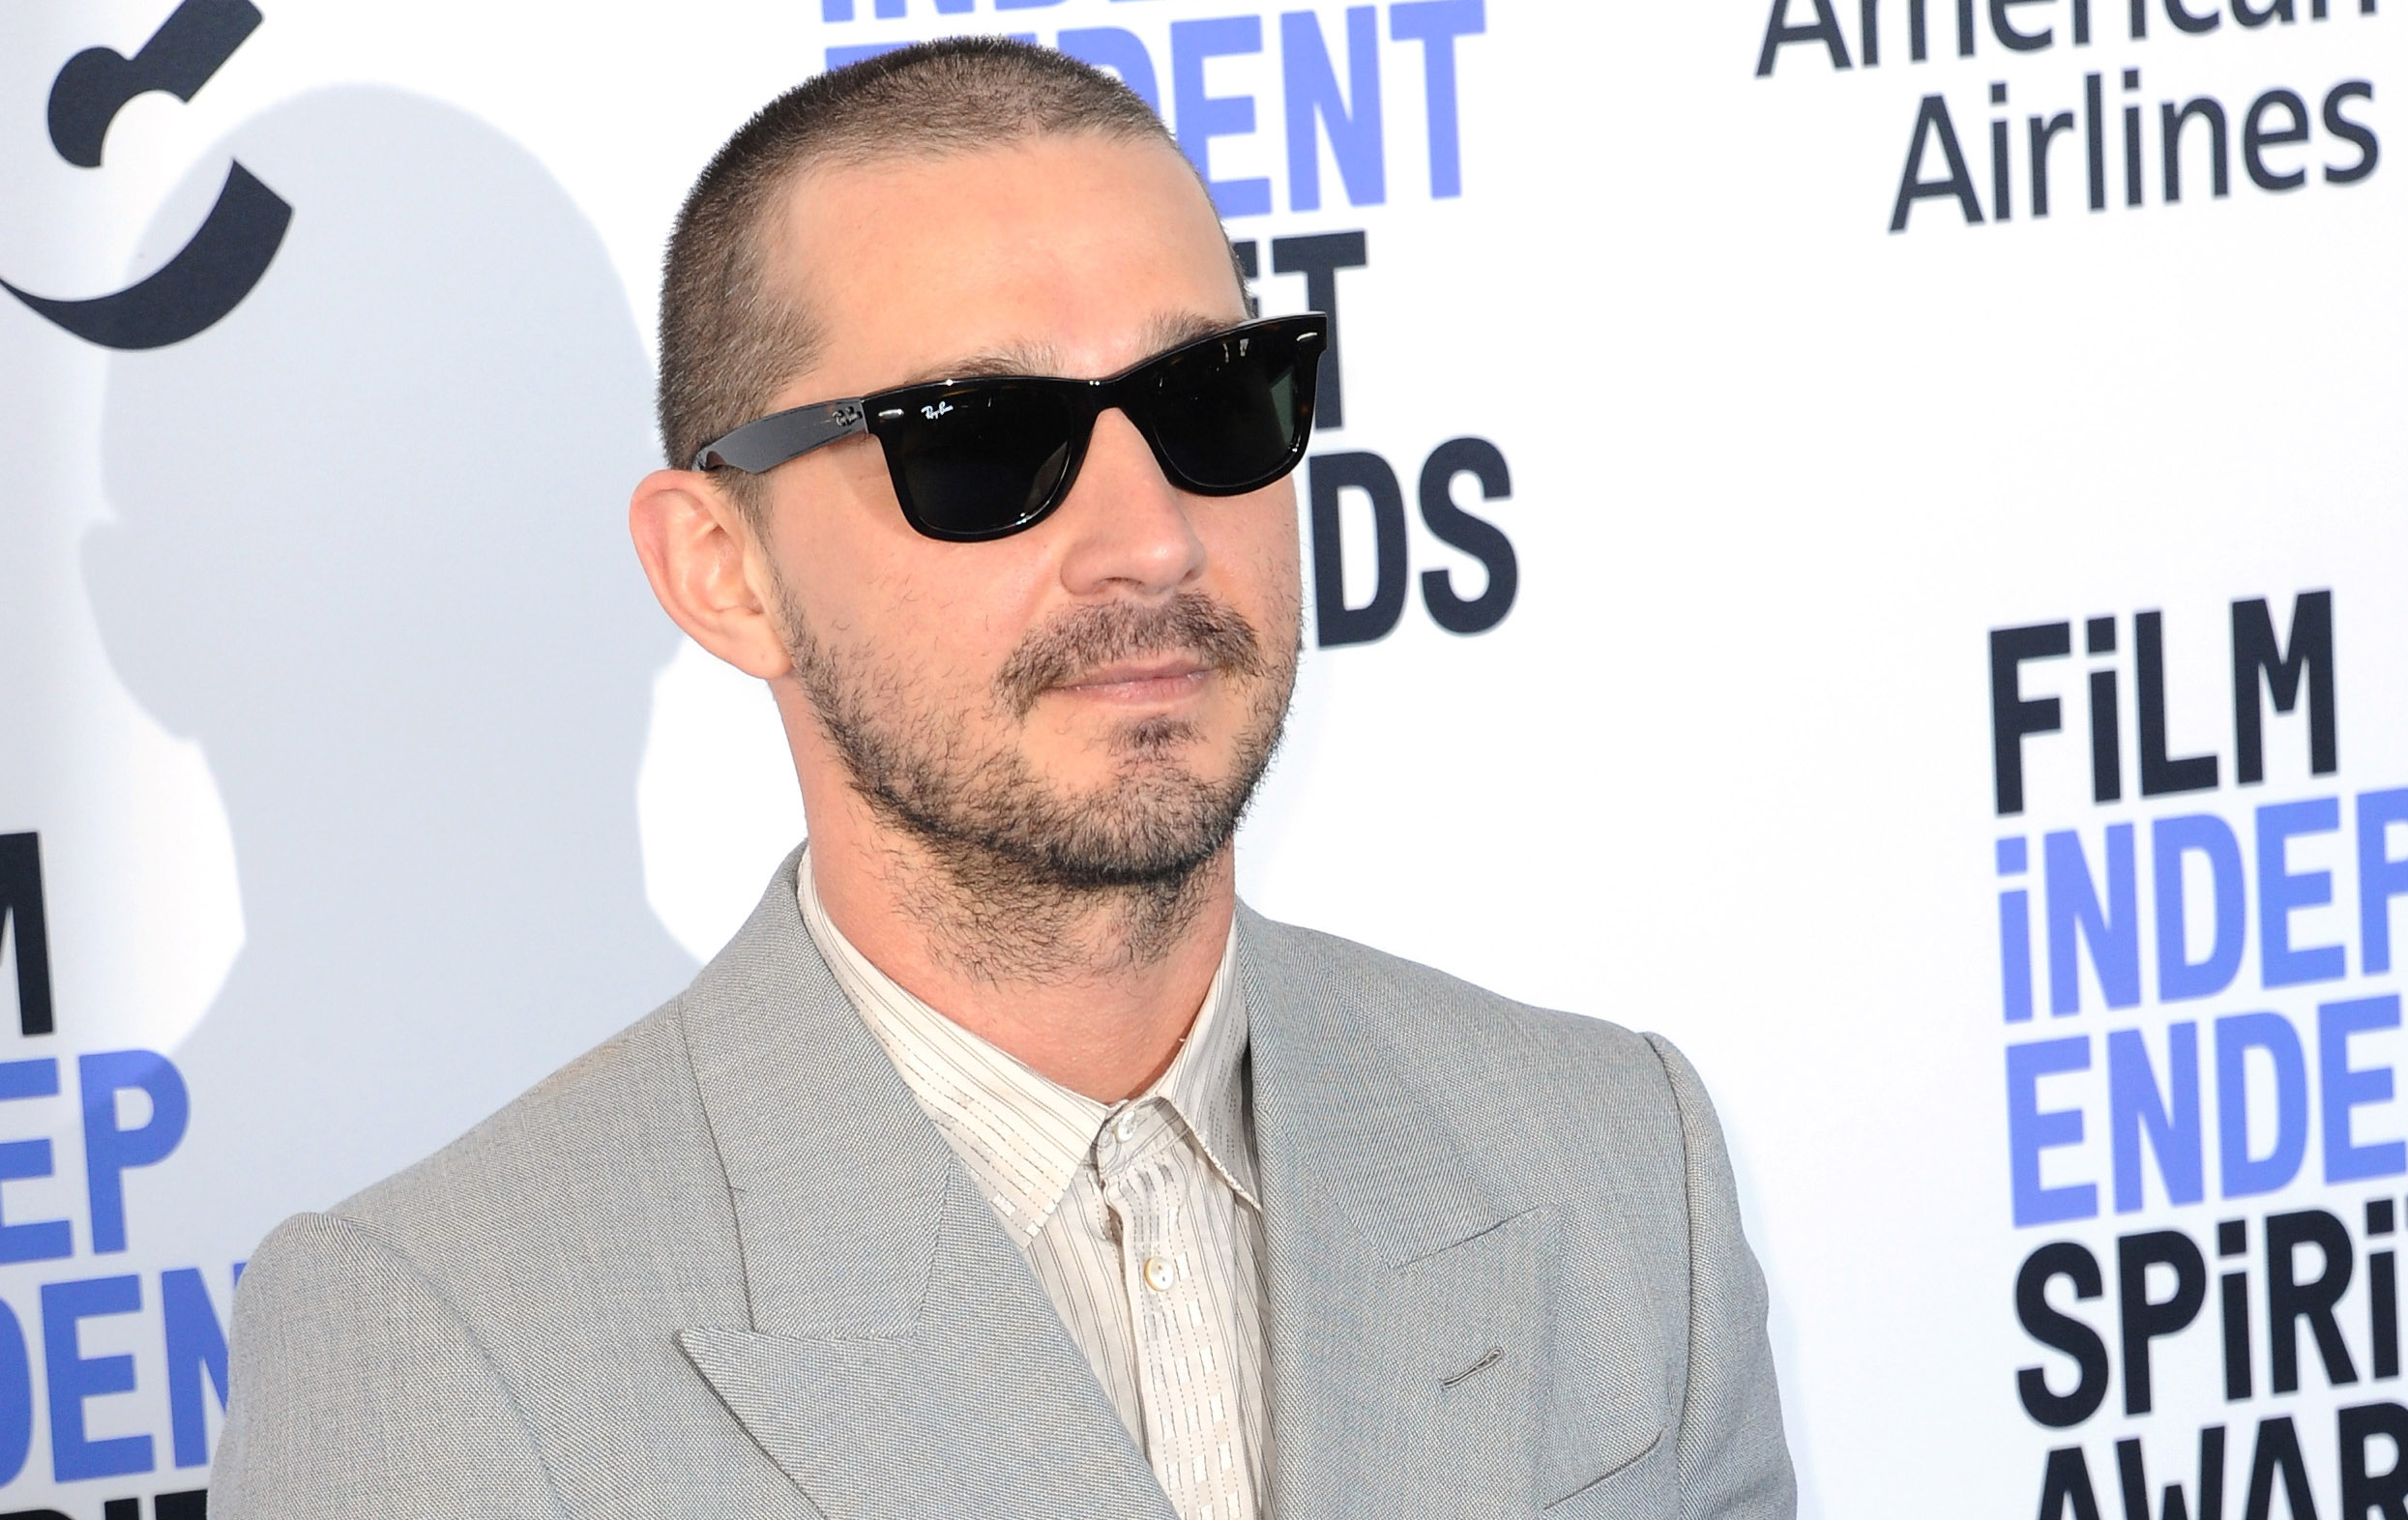 Tattooed Shia LaBeouf Poses for Photos with Fans in His